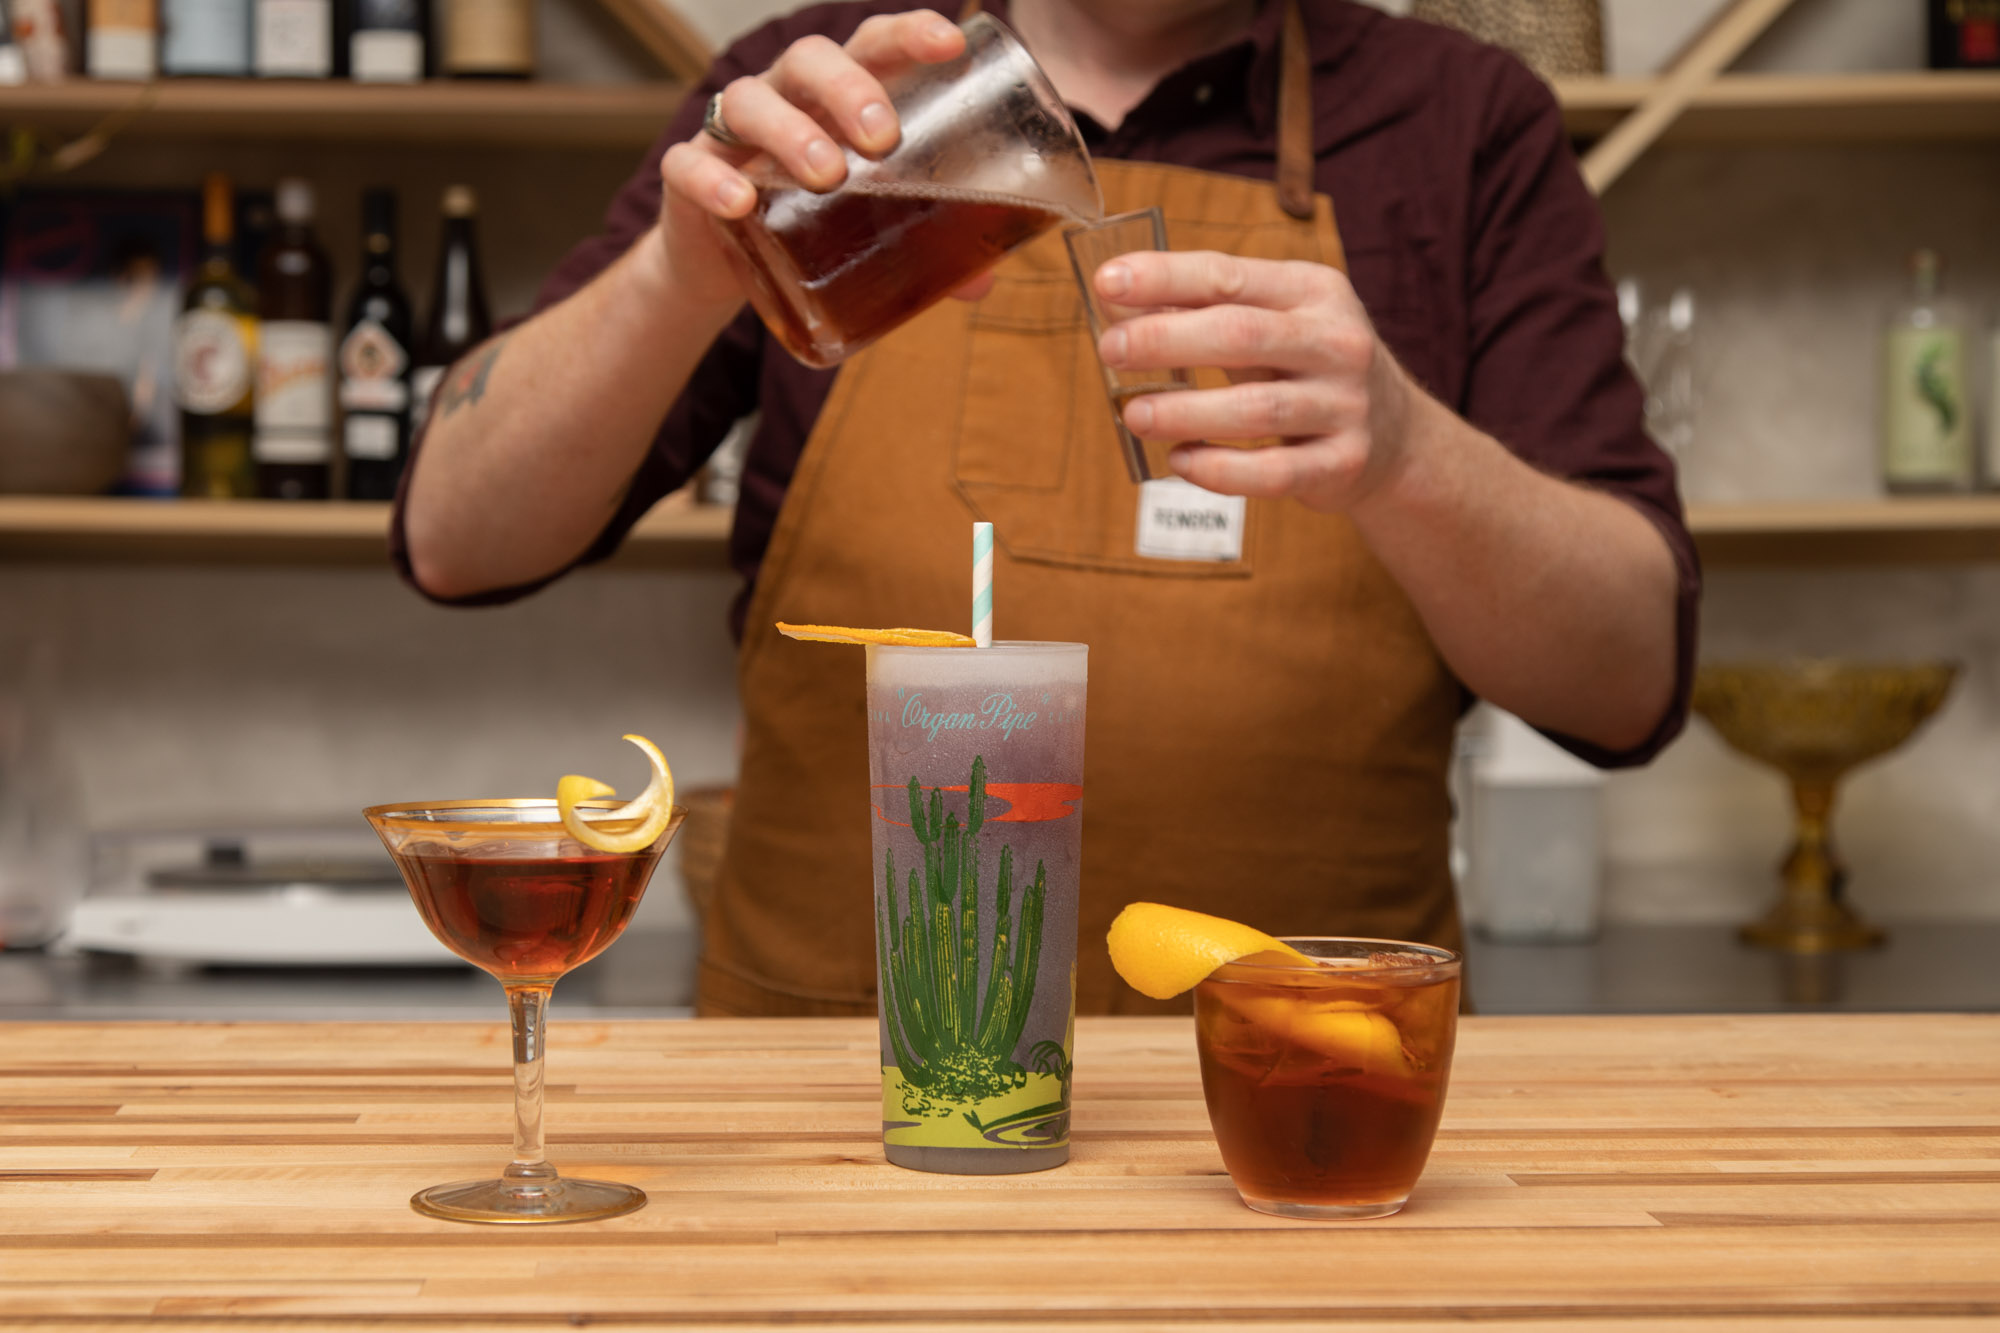 Session Cocktails - A benefit of low ABV cocktails is that they compliment a long night of imbibing with friends… more of the fun with slightly less punch than your traditional cocktails yet decidedly delicious.